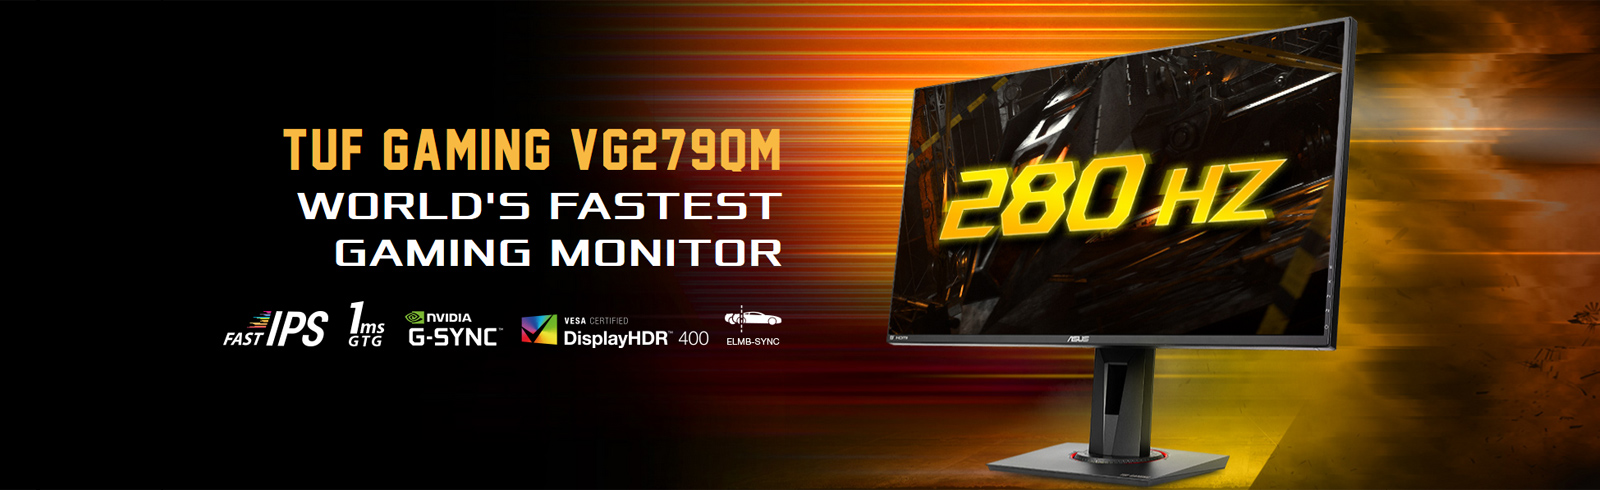 The Asus TUF Gaming VG279QM and ROG Strix XG279Q are now available outside China